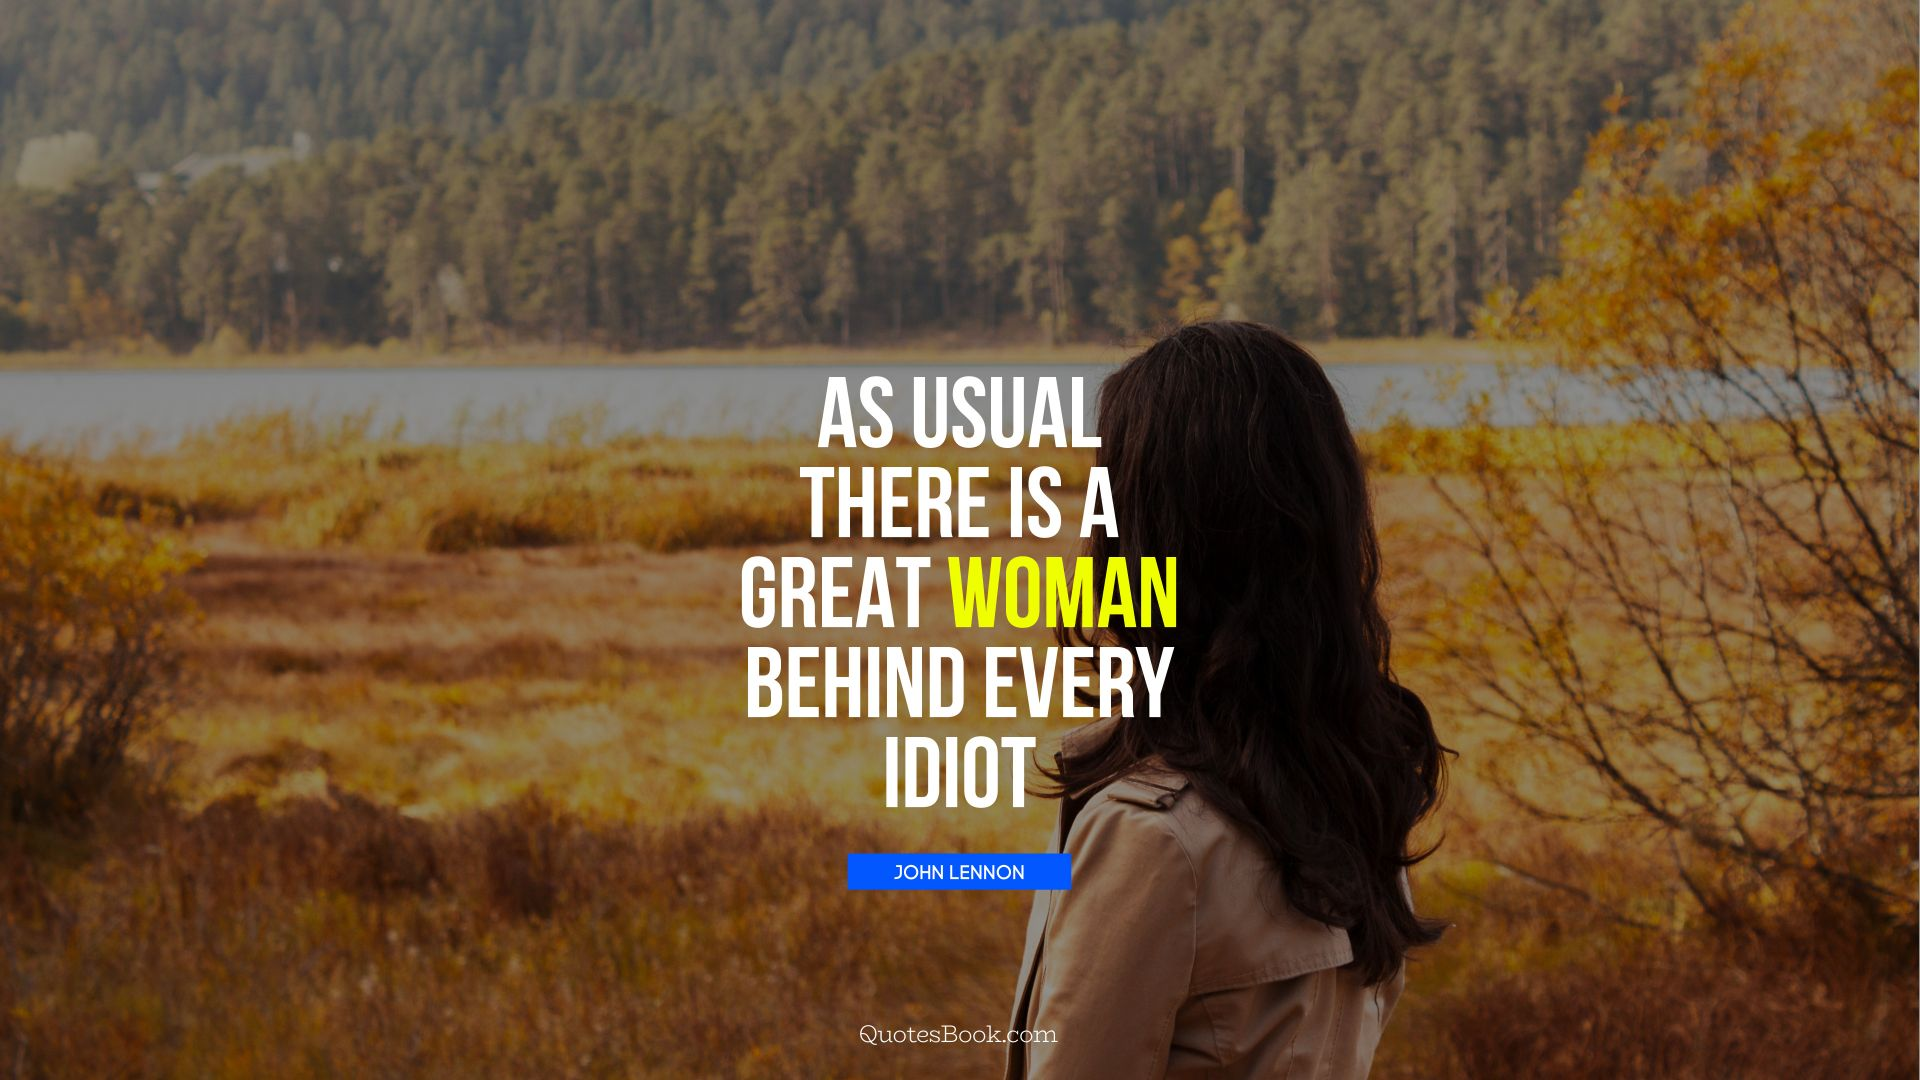 As usual there is a great woman behind every idiot. - Quote by John Lennon